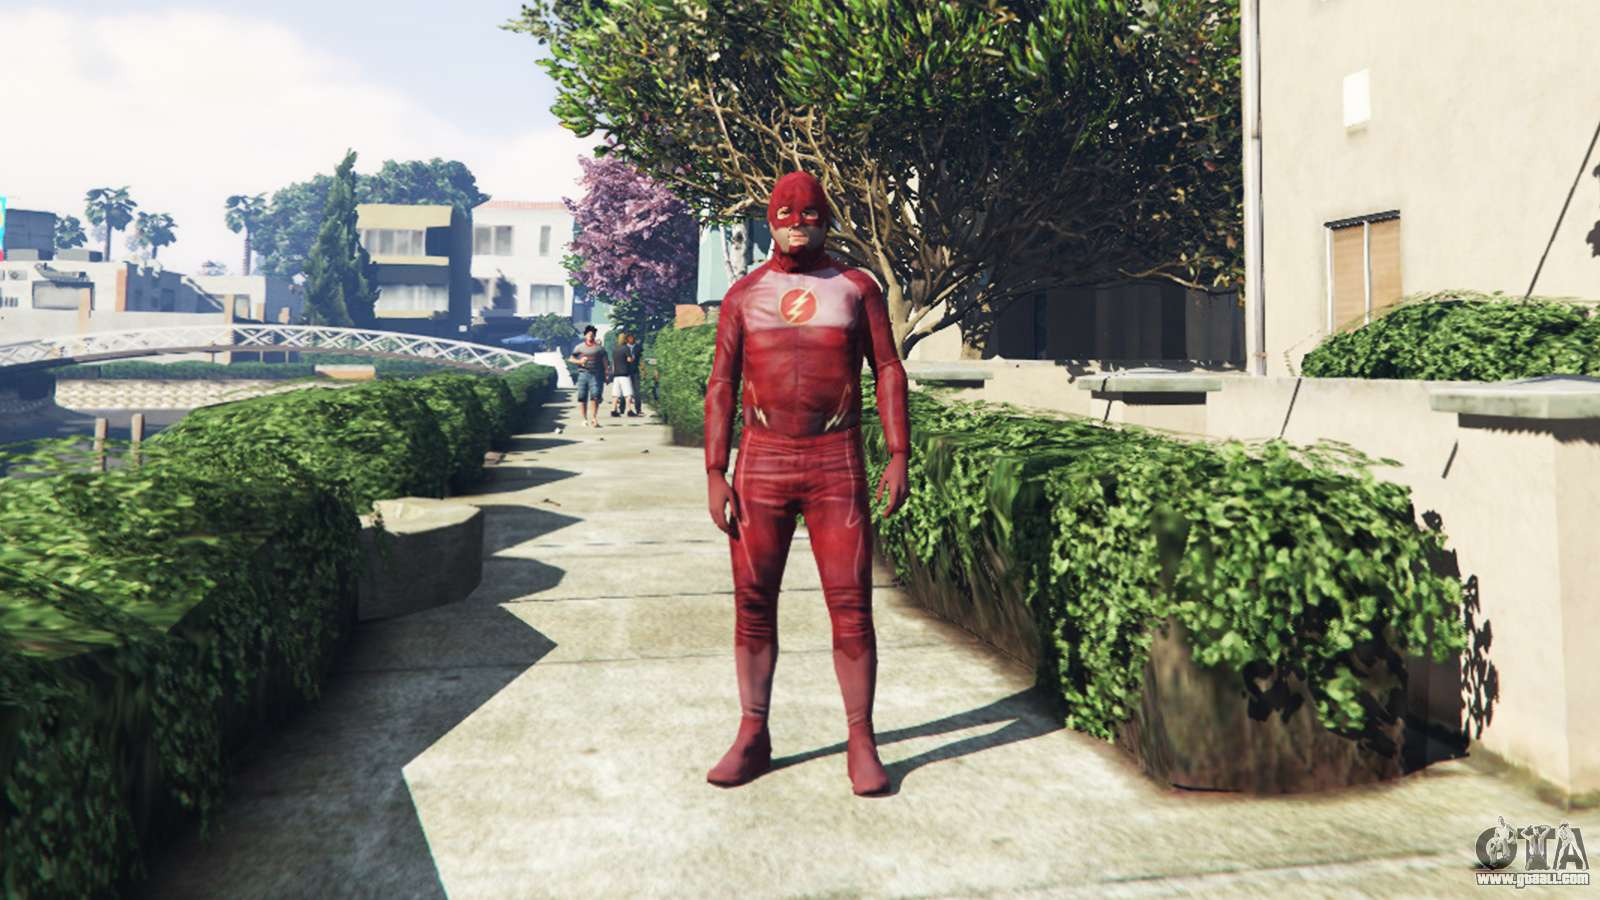 The Flash Costume For GTA 5